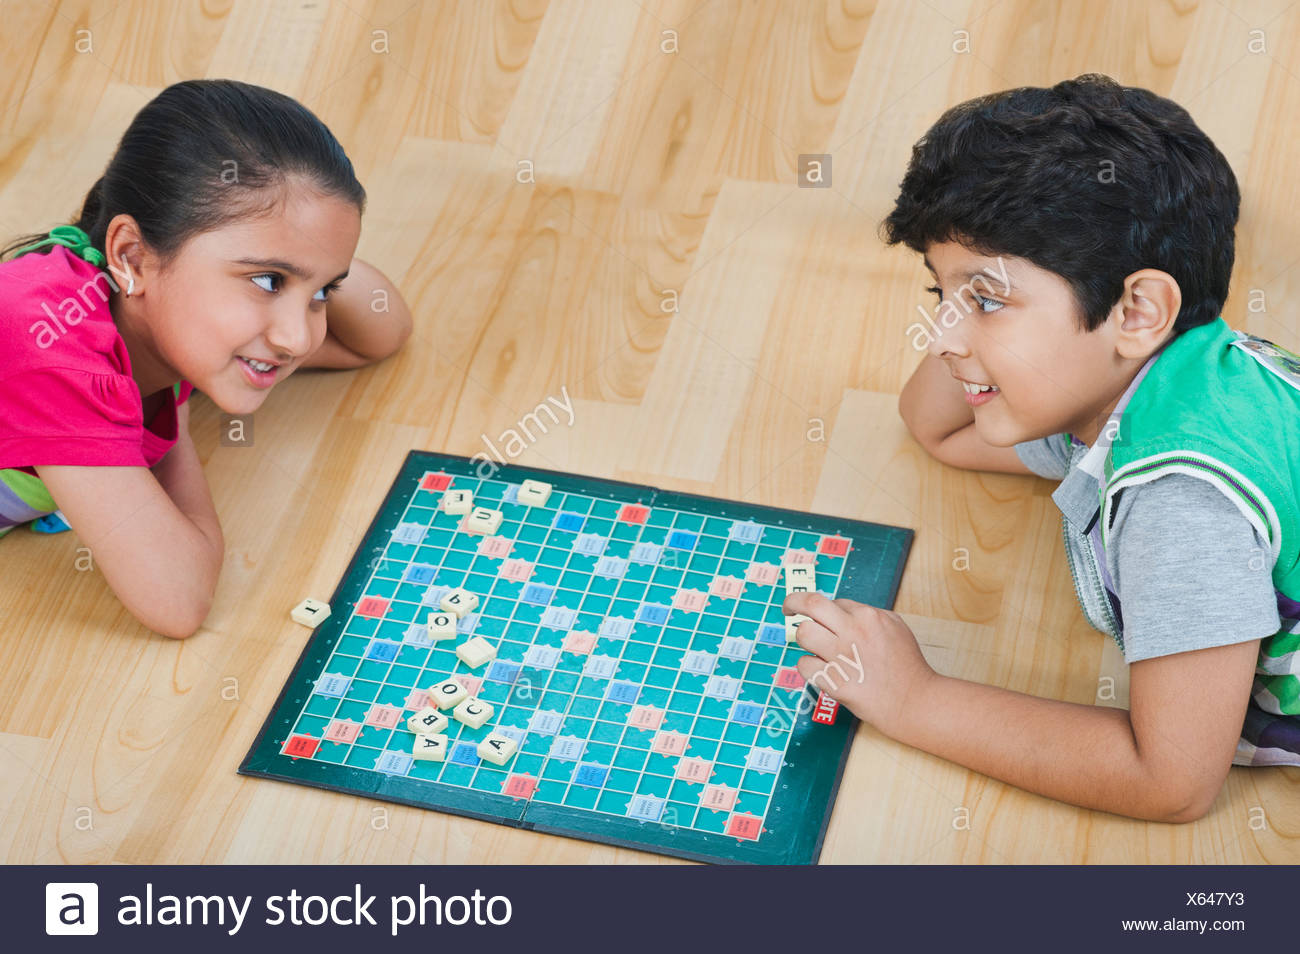 Children playing crossword puzzle game - Stock Image